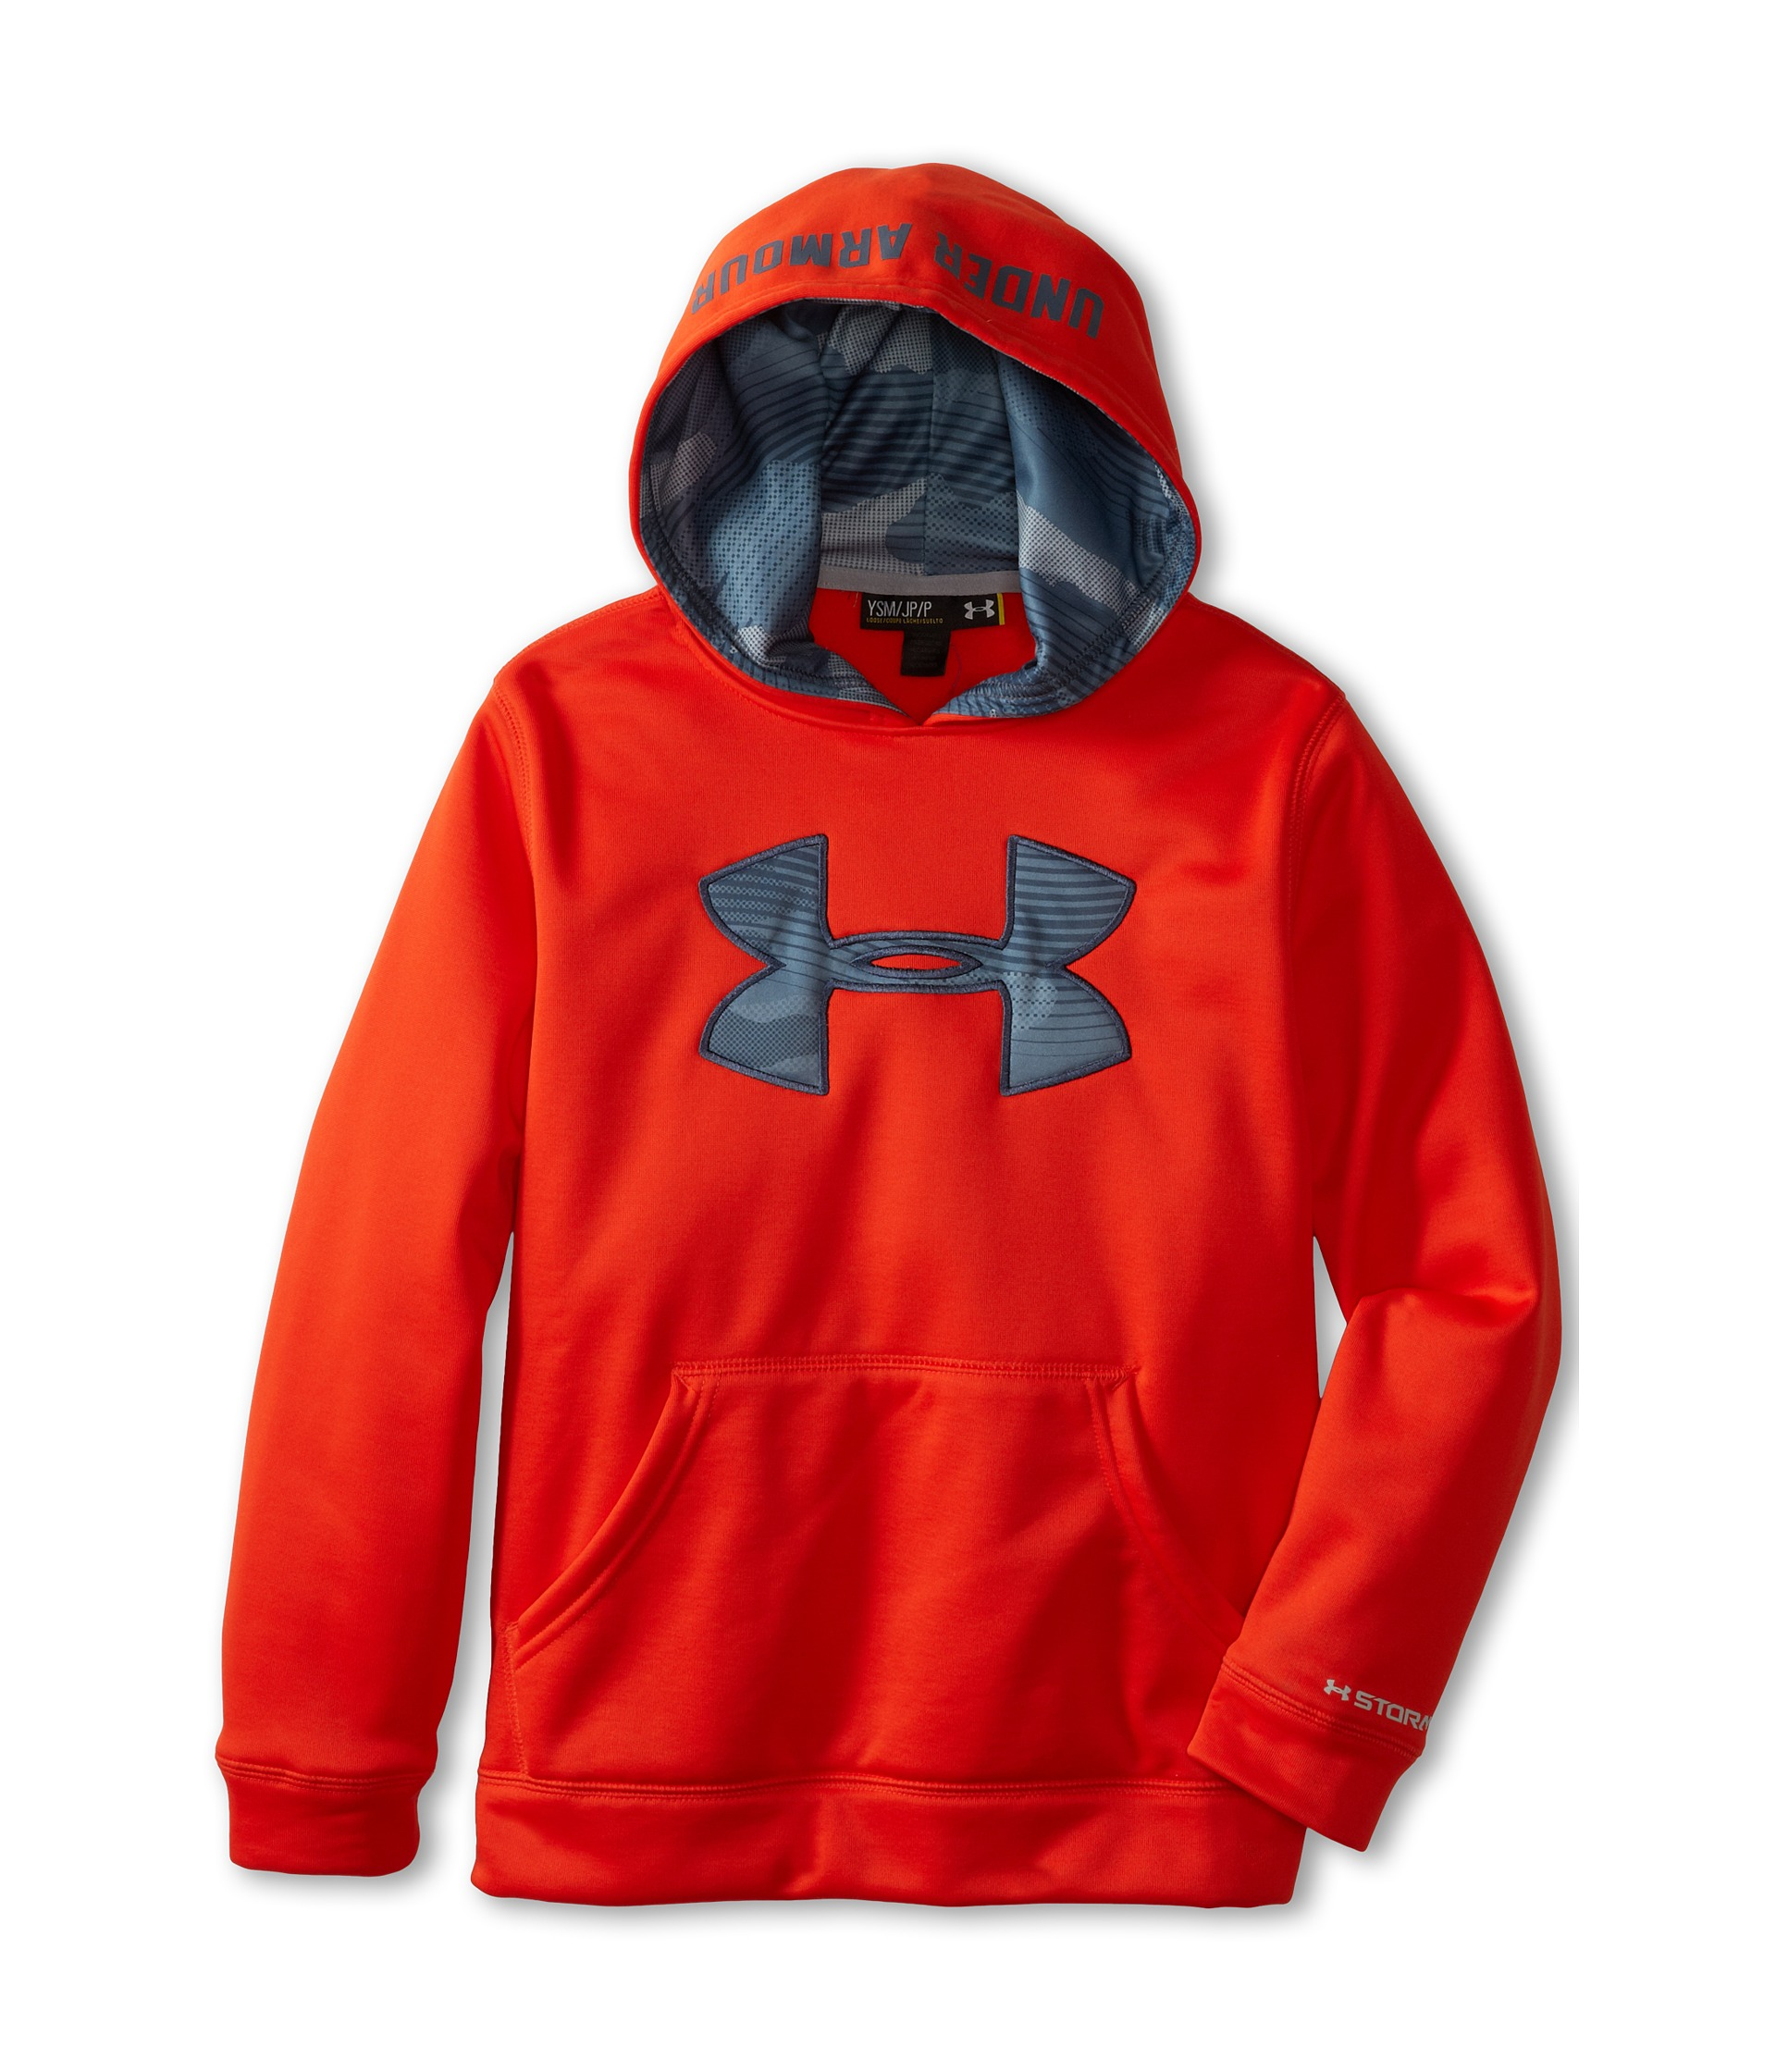 stars 75   4 stars 0   3 stars 0   2 stars 25   1 star 0  Under Armour Sweatshirts Orange